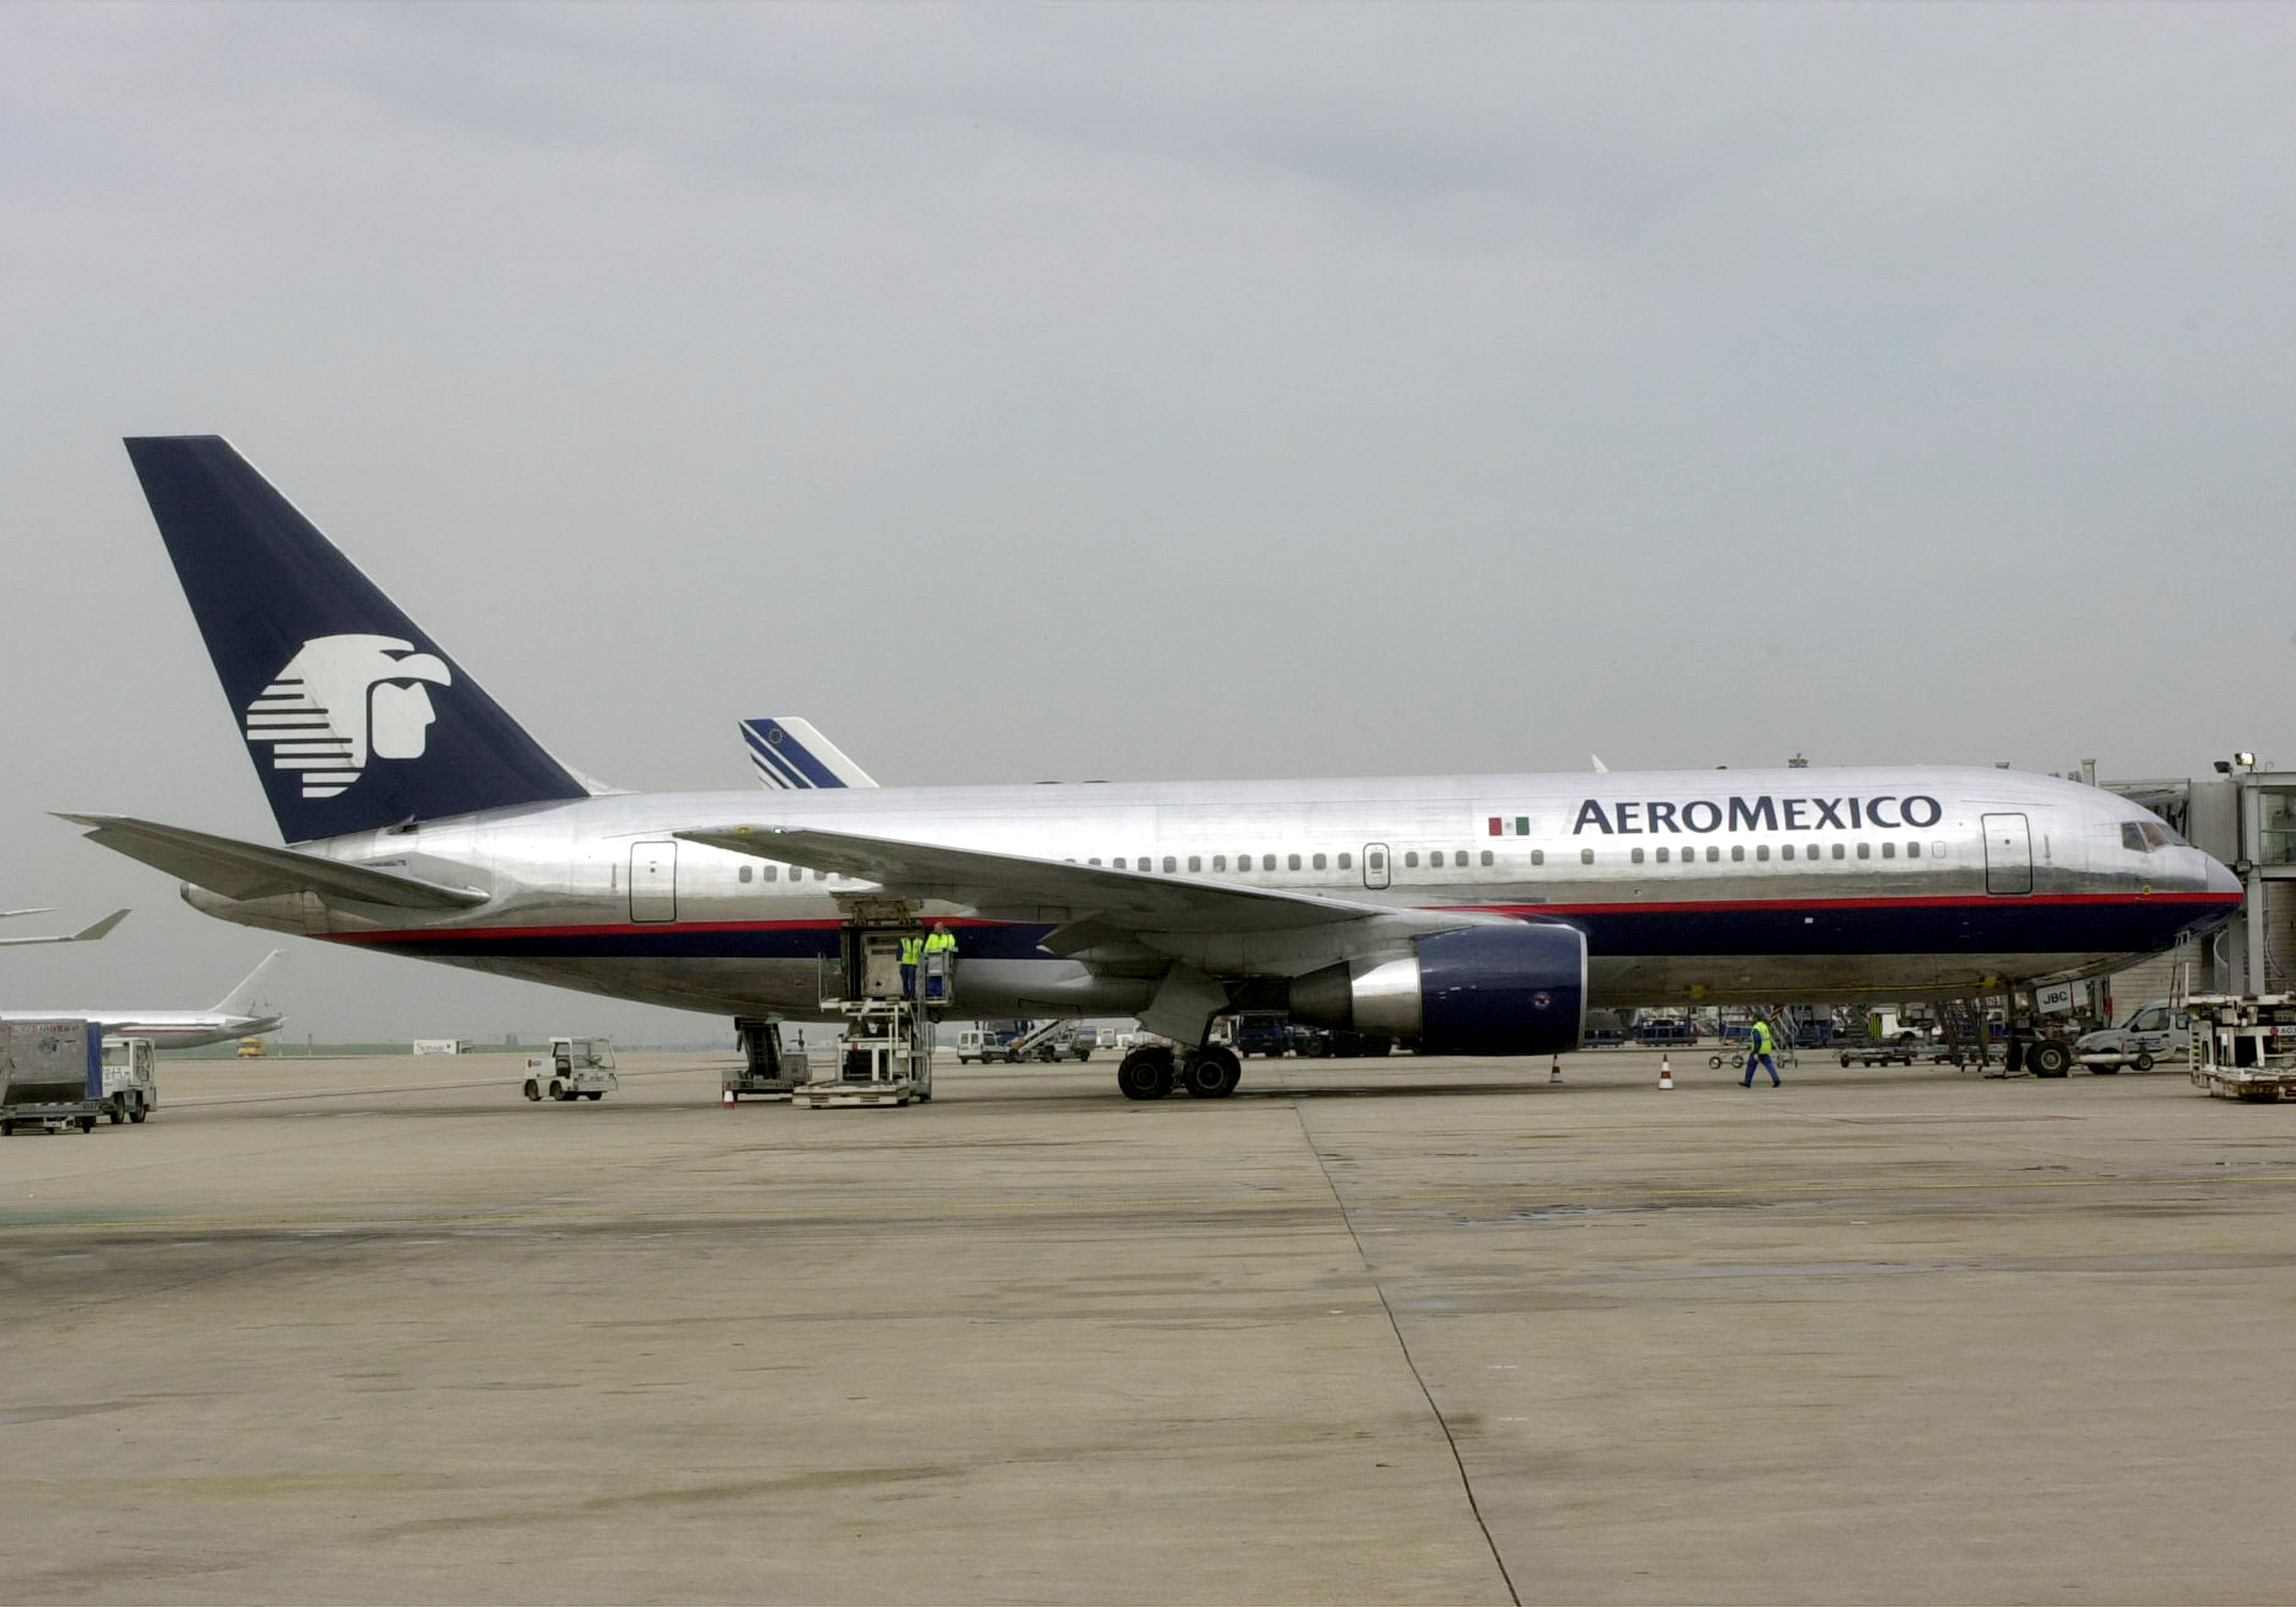 AeroMexico plane sitting at Gate